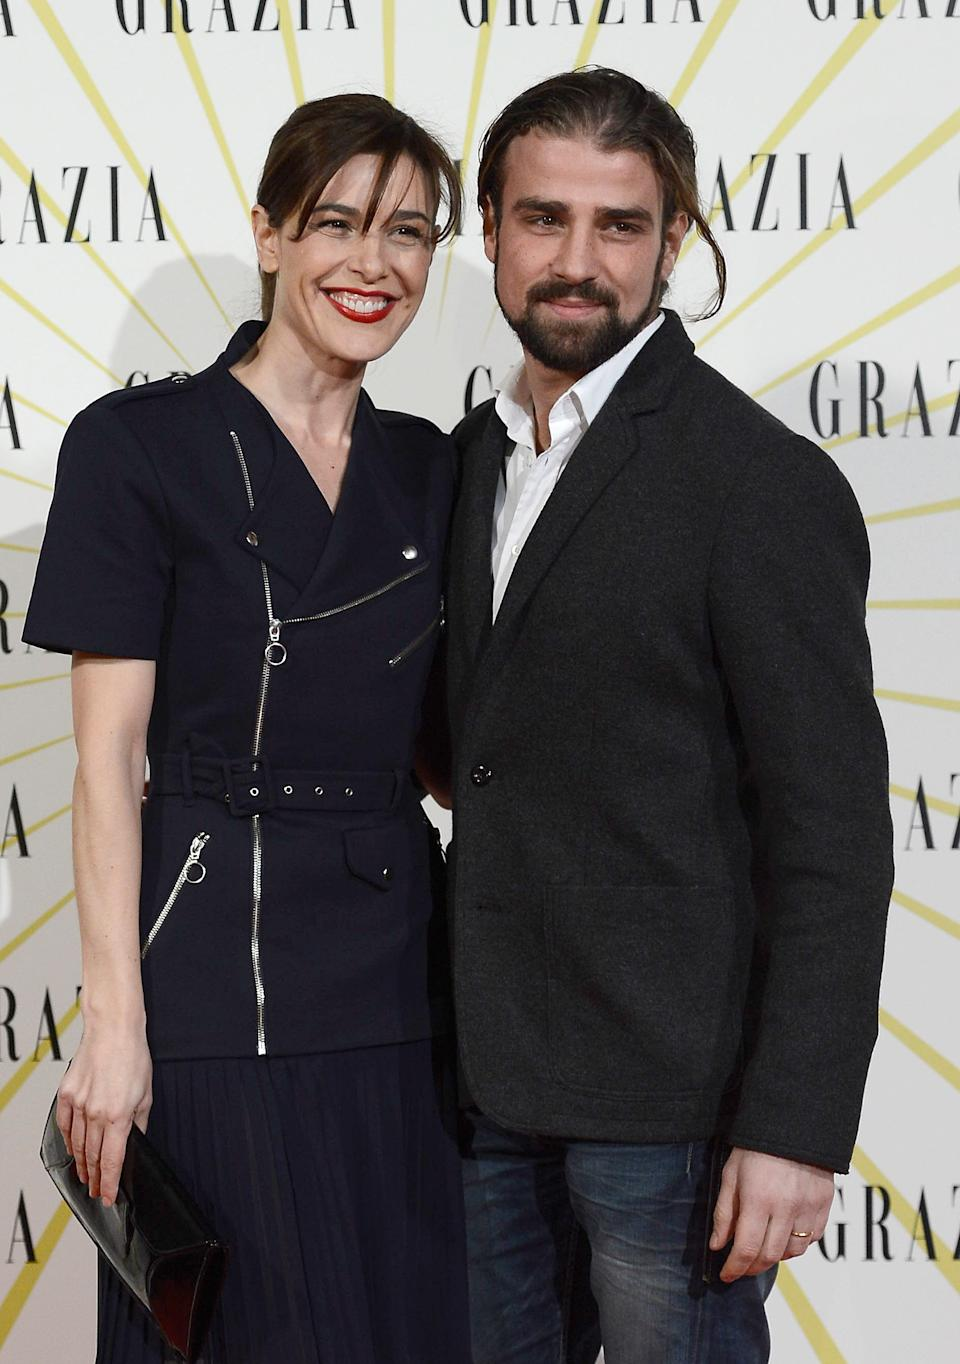 MADRID, SPAIN - FEBRUARY 12:  Raquel Sanchez Silva (L) and Mario Biondo  attend Grazia Magazine launch party at the Circo Prize Theater on February 12, 2013 in Madrid, Spain.  (Photo by Fotonoticias/WireImage)